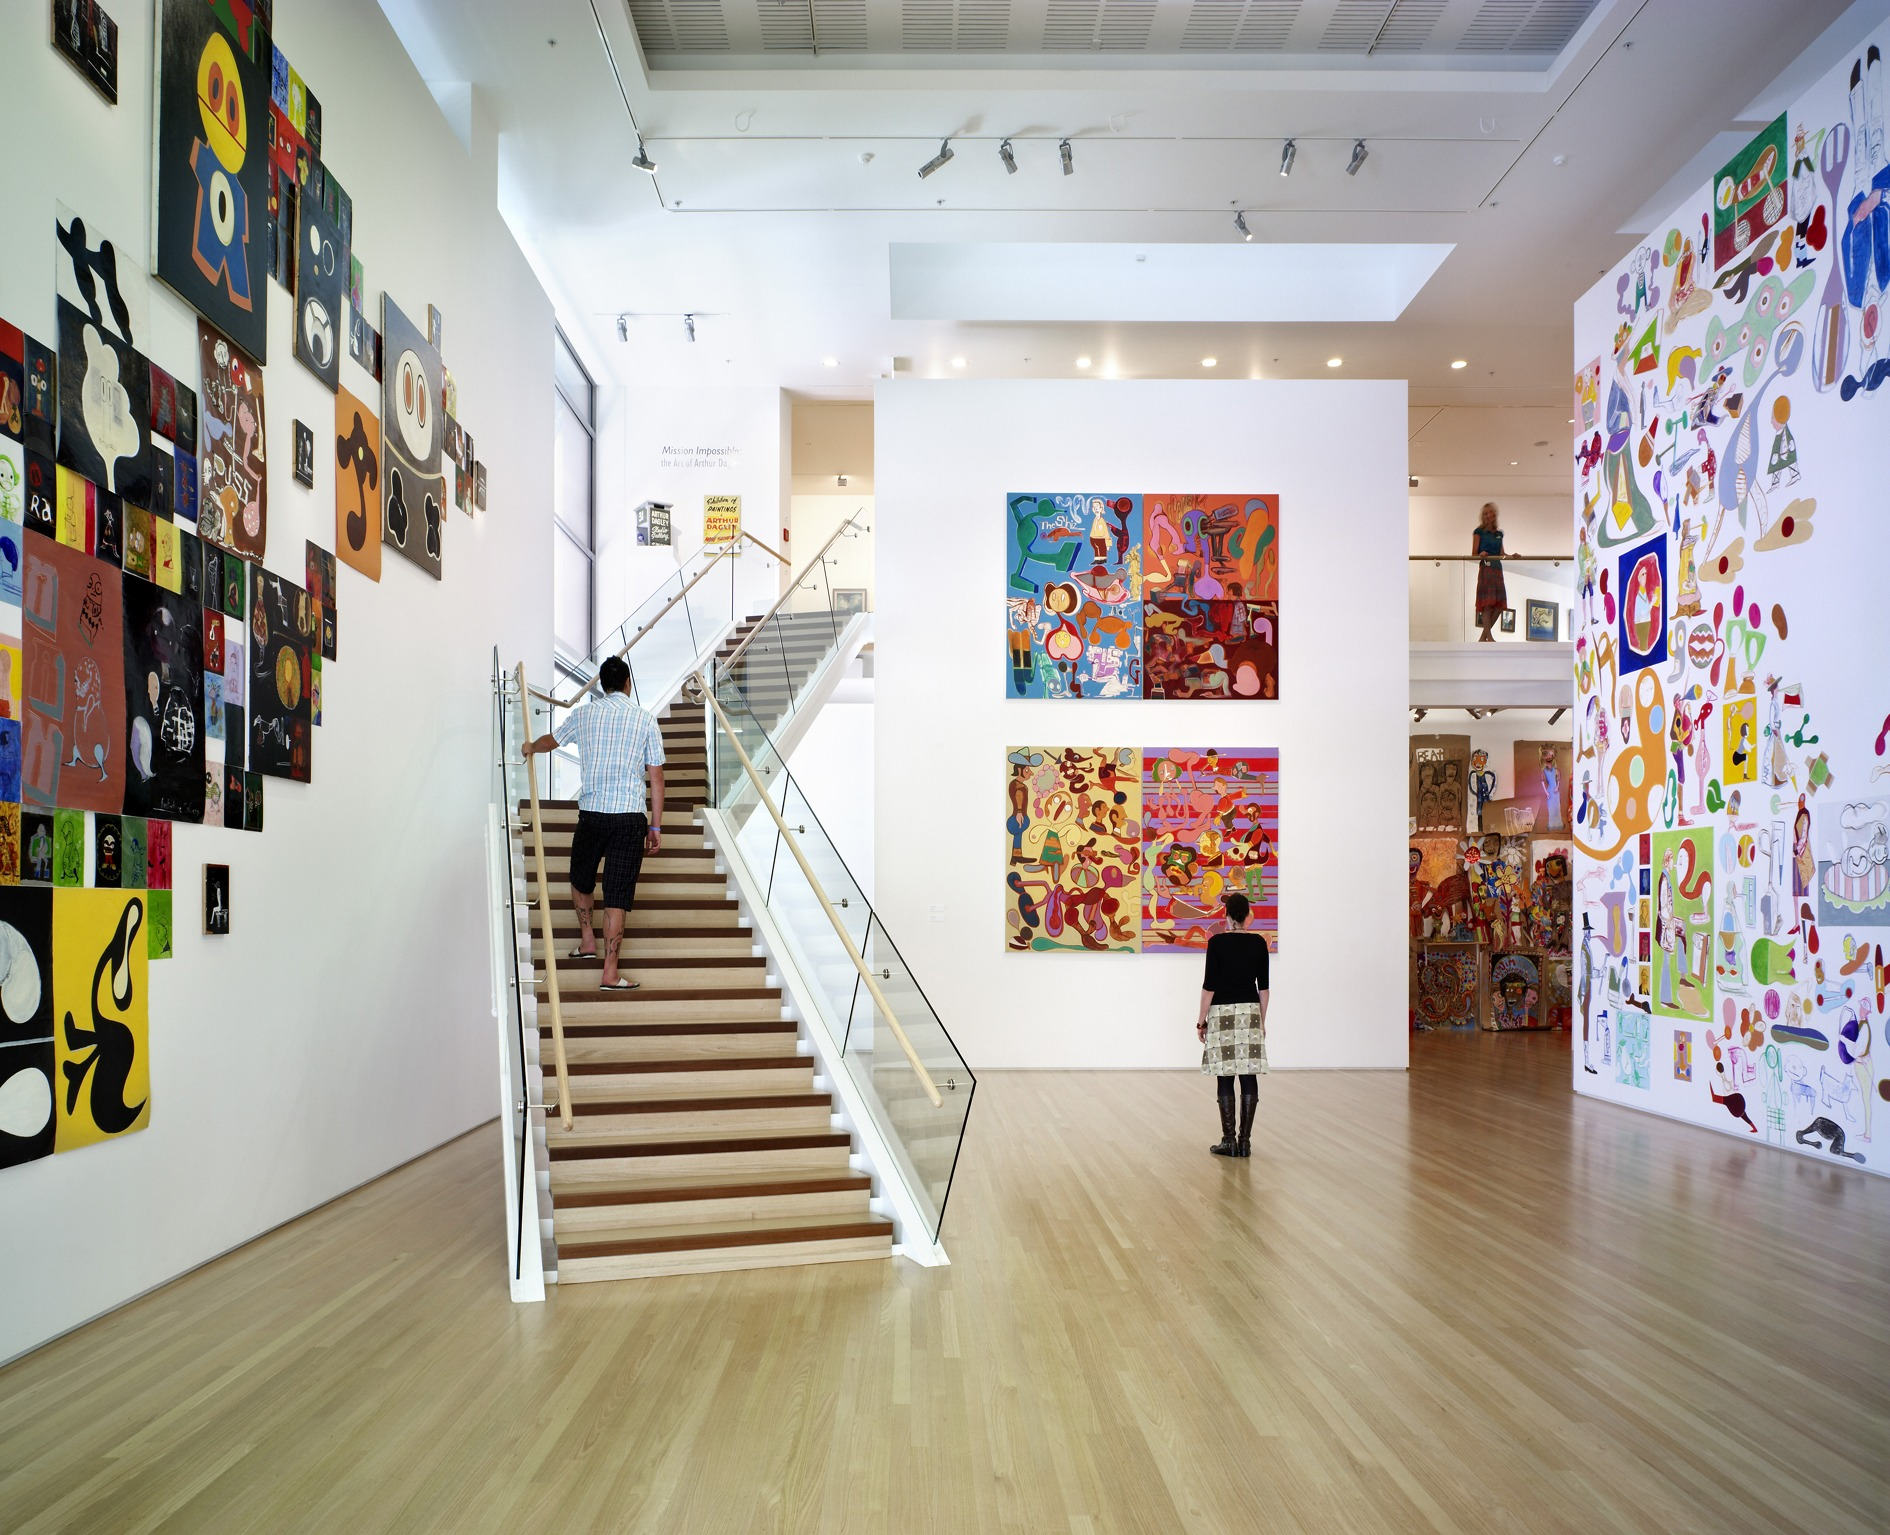 Tauranga Art Gallery Stairs by Top Flyte Systems